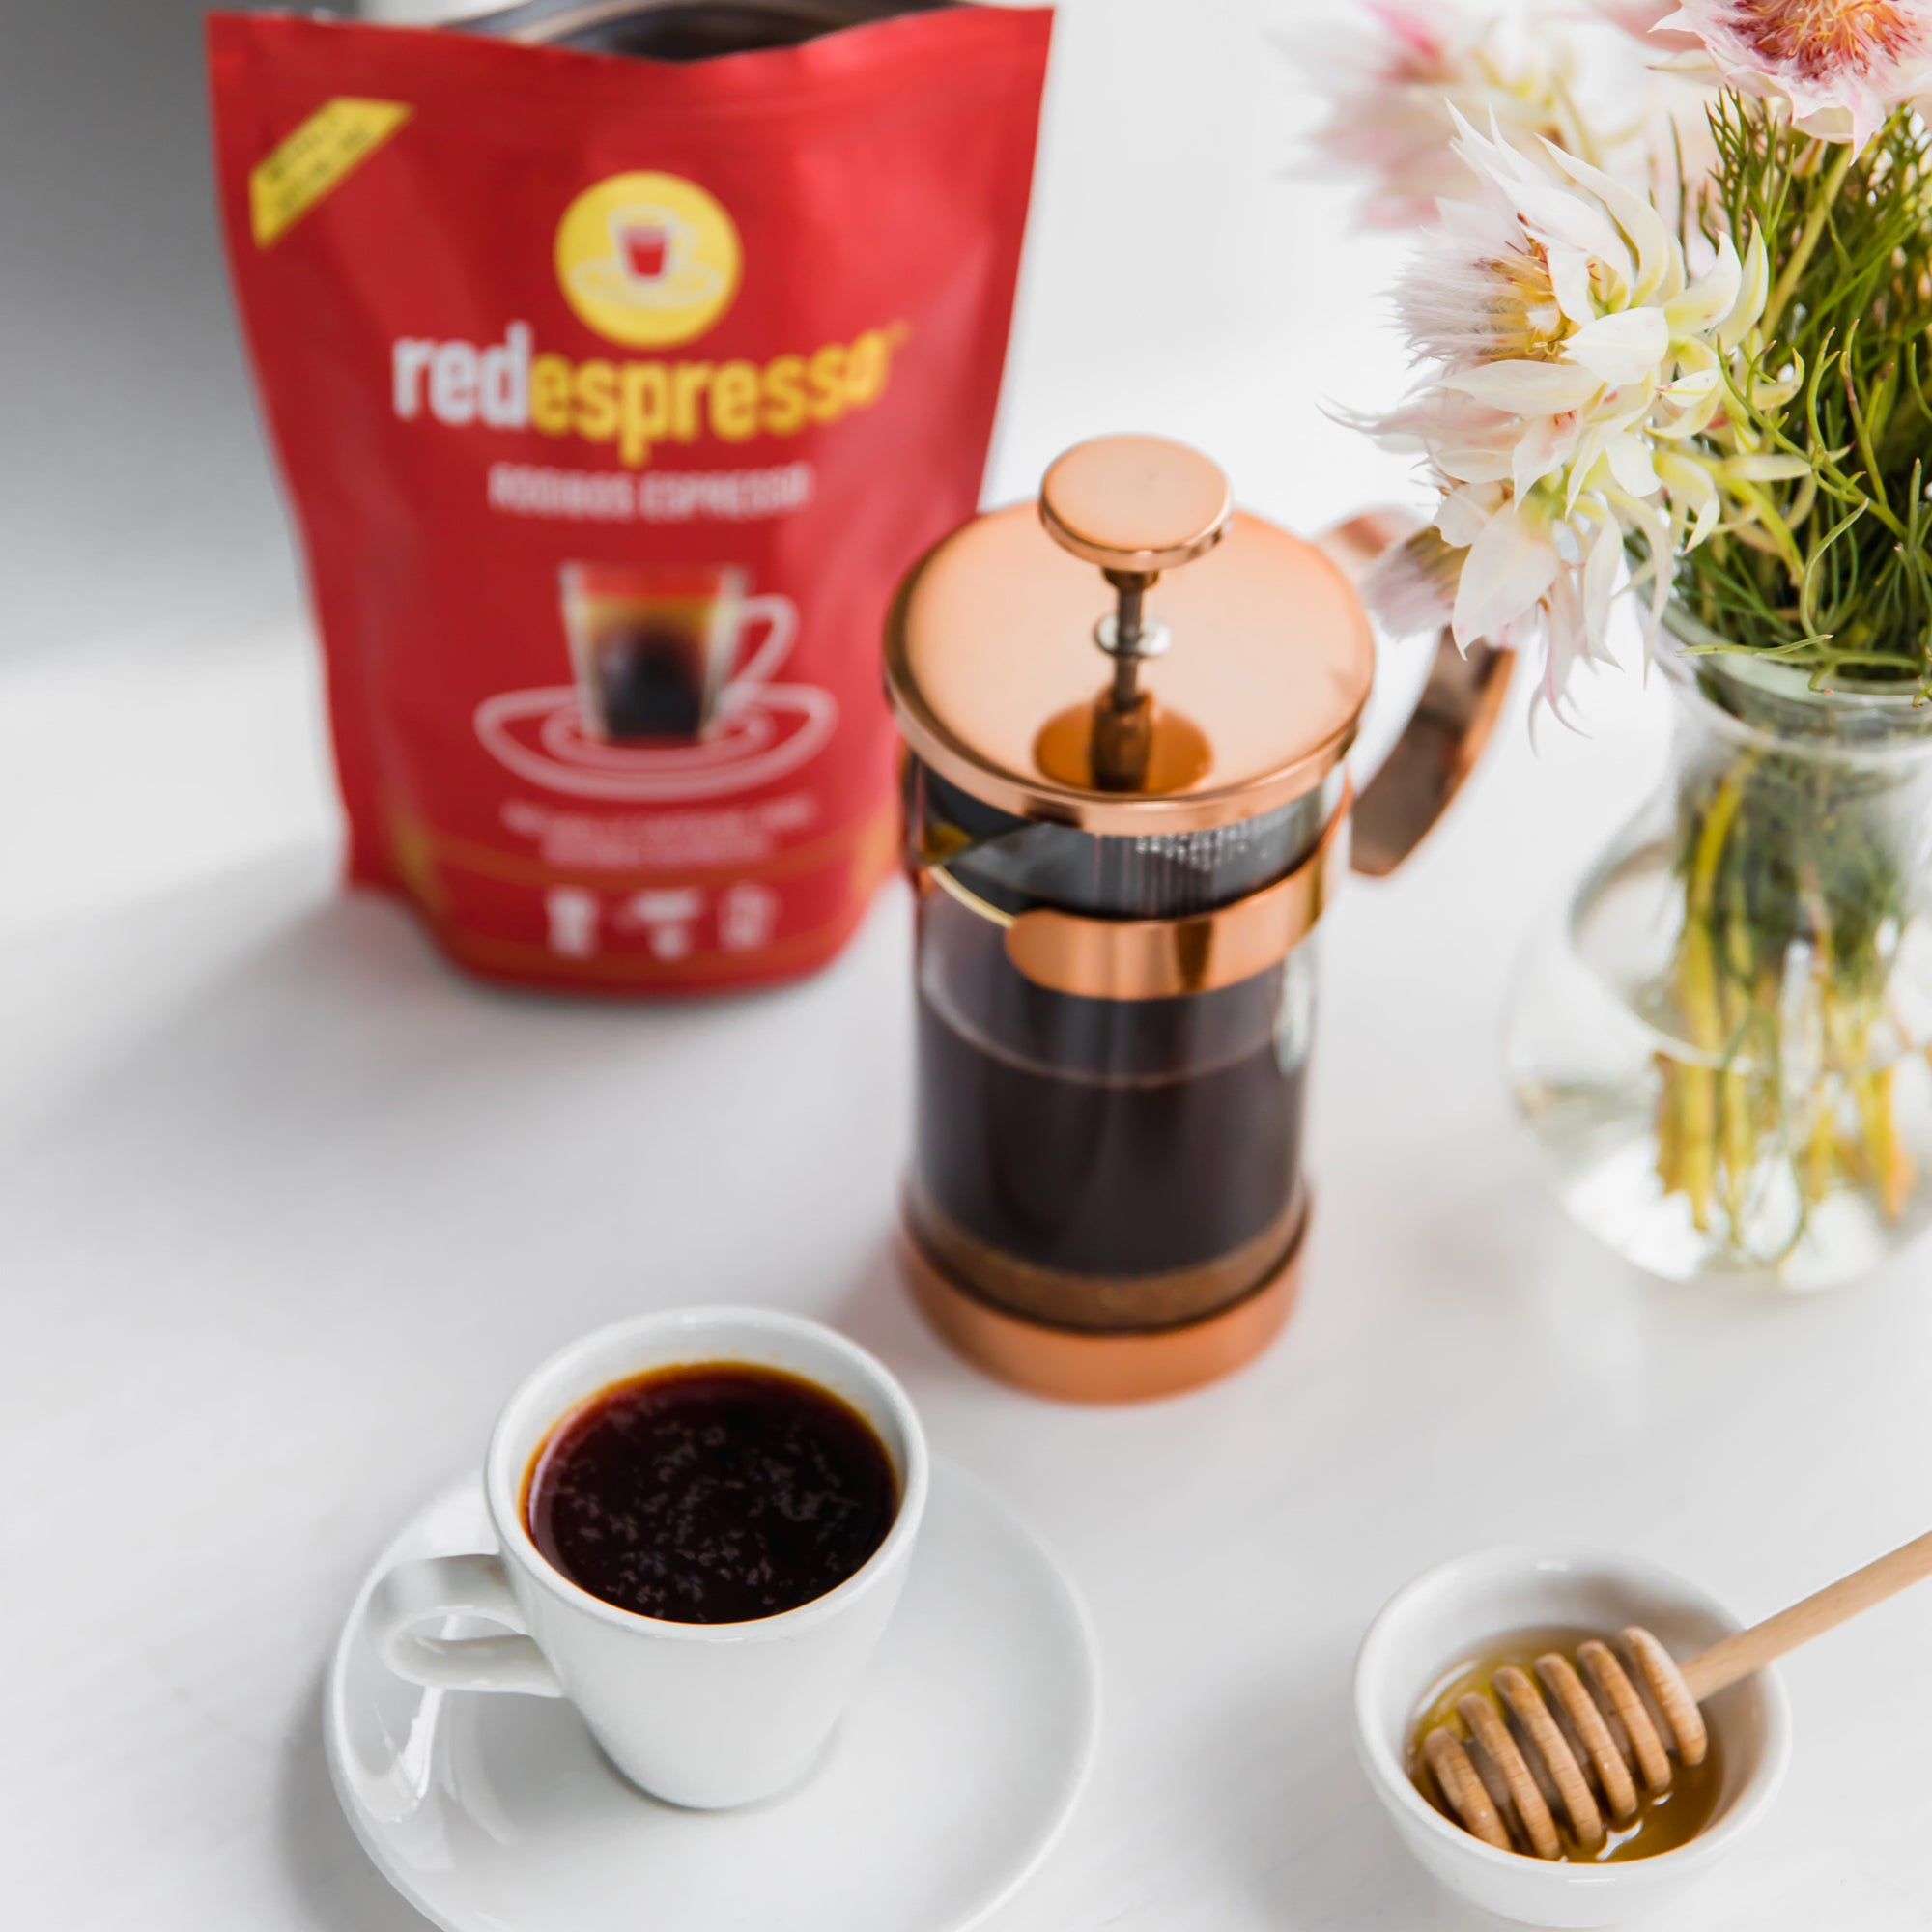 Brew red espresso rooibos using your french press